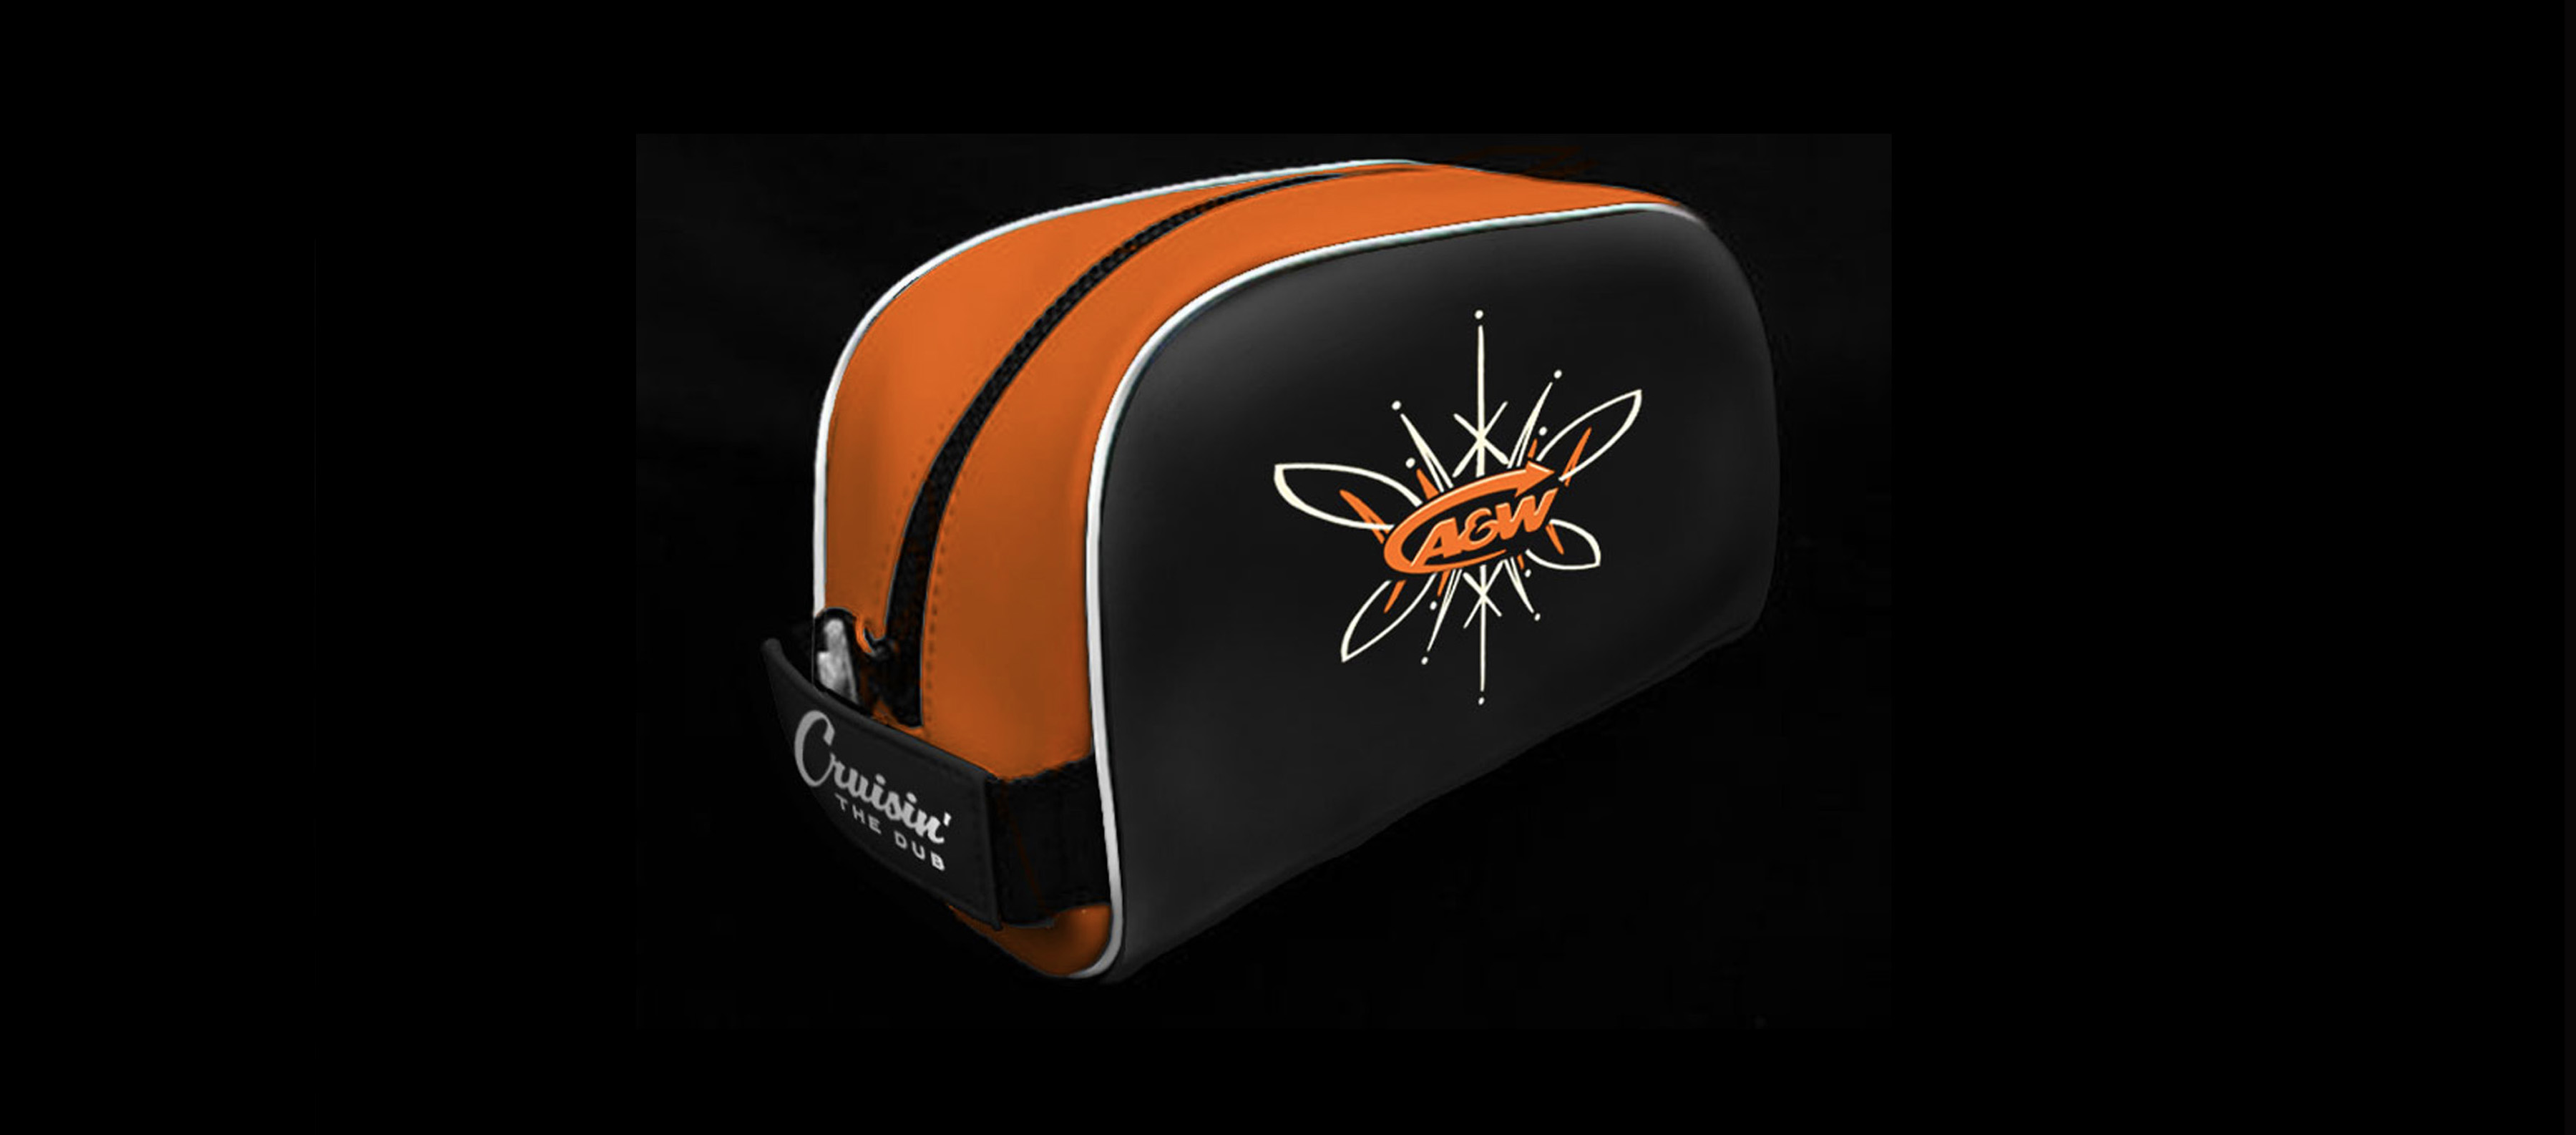 A&W toiletry bag